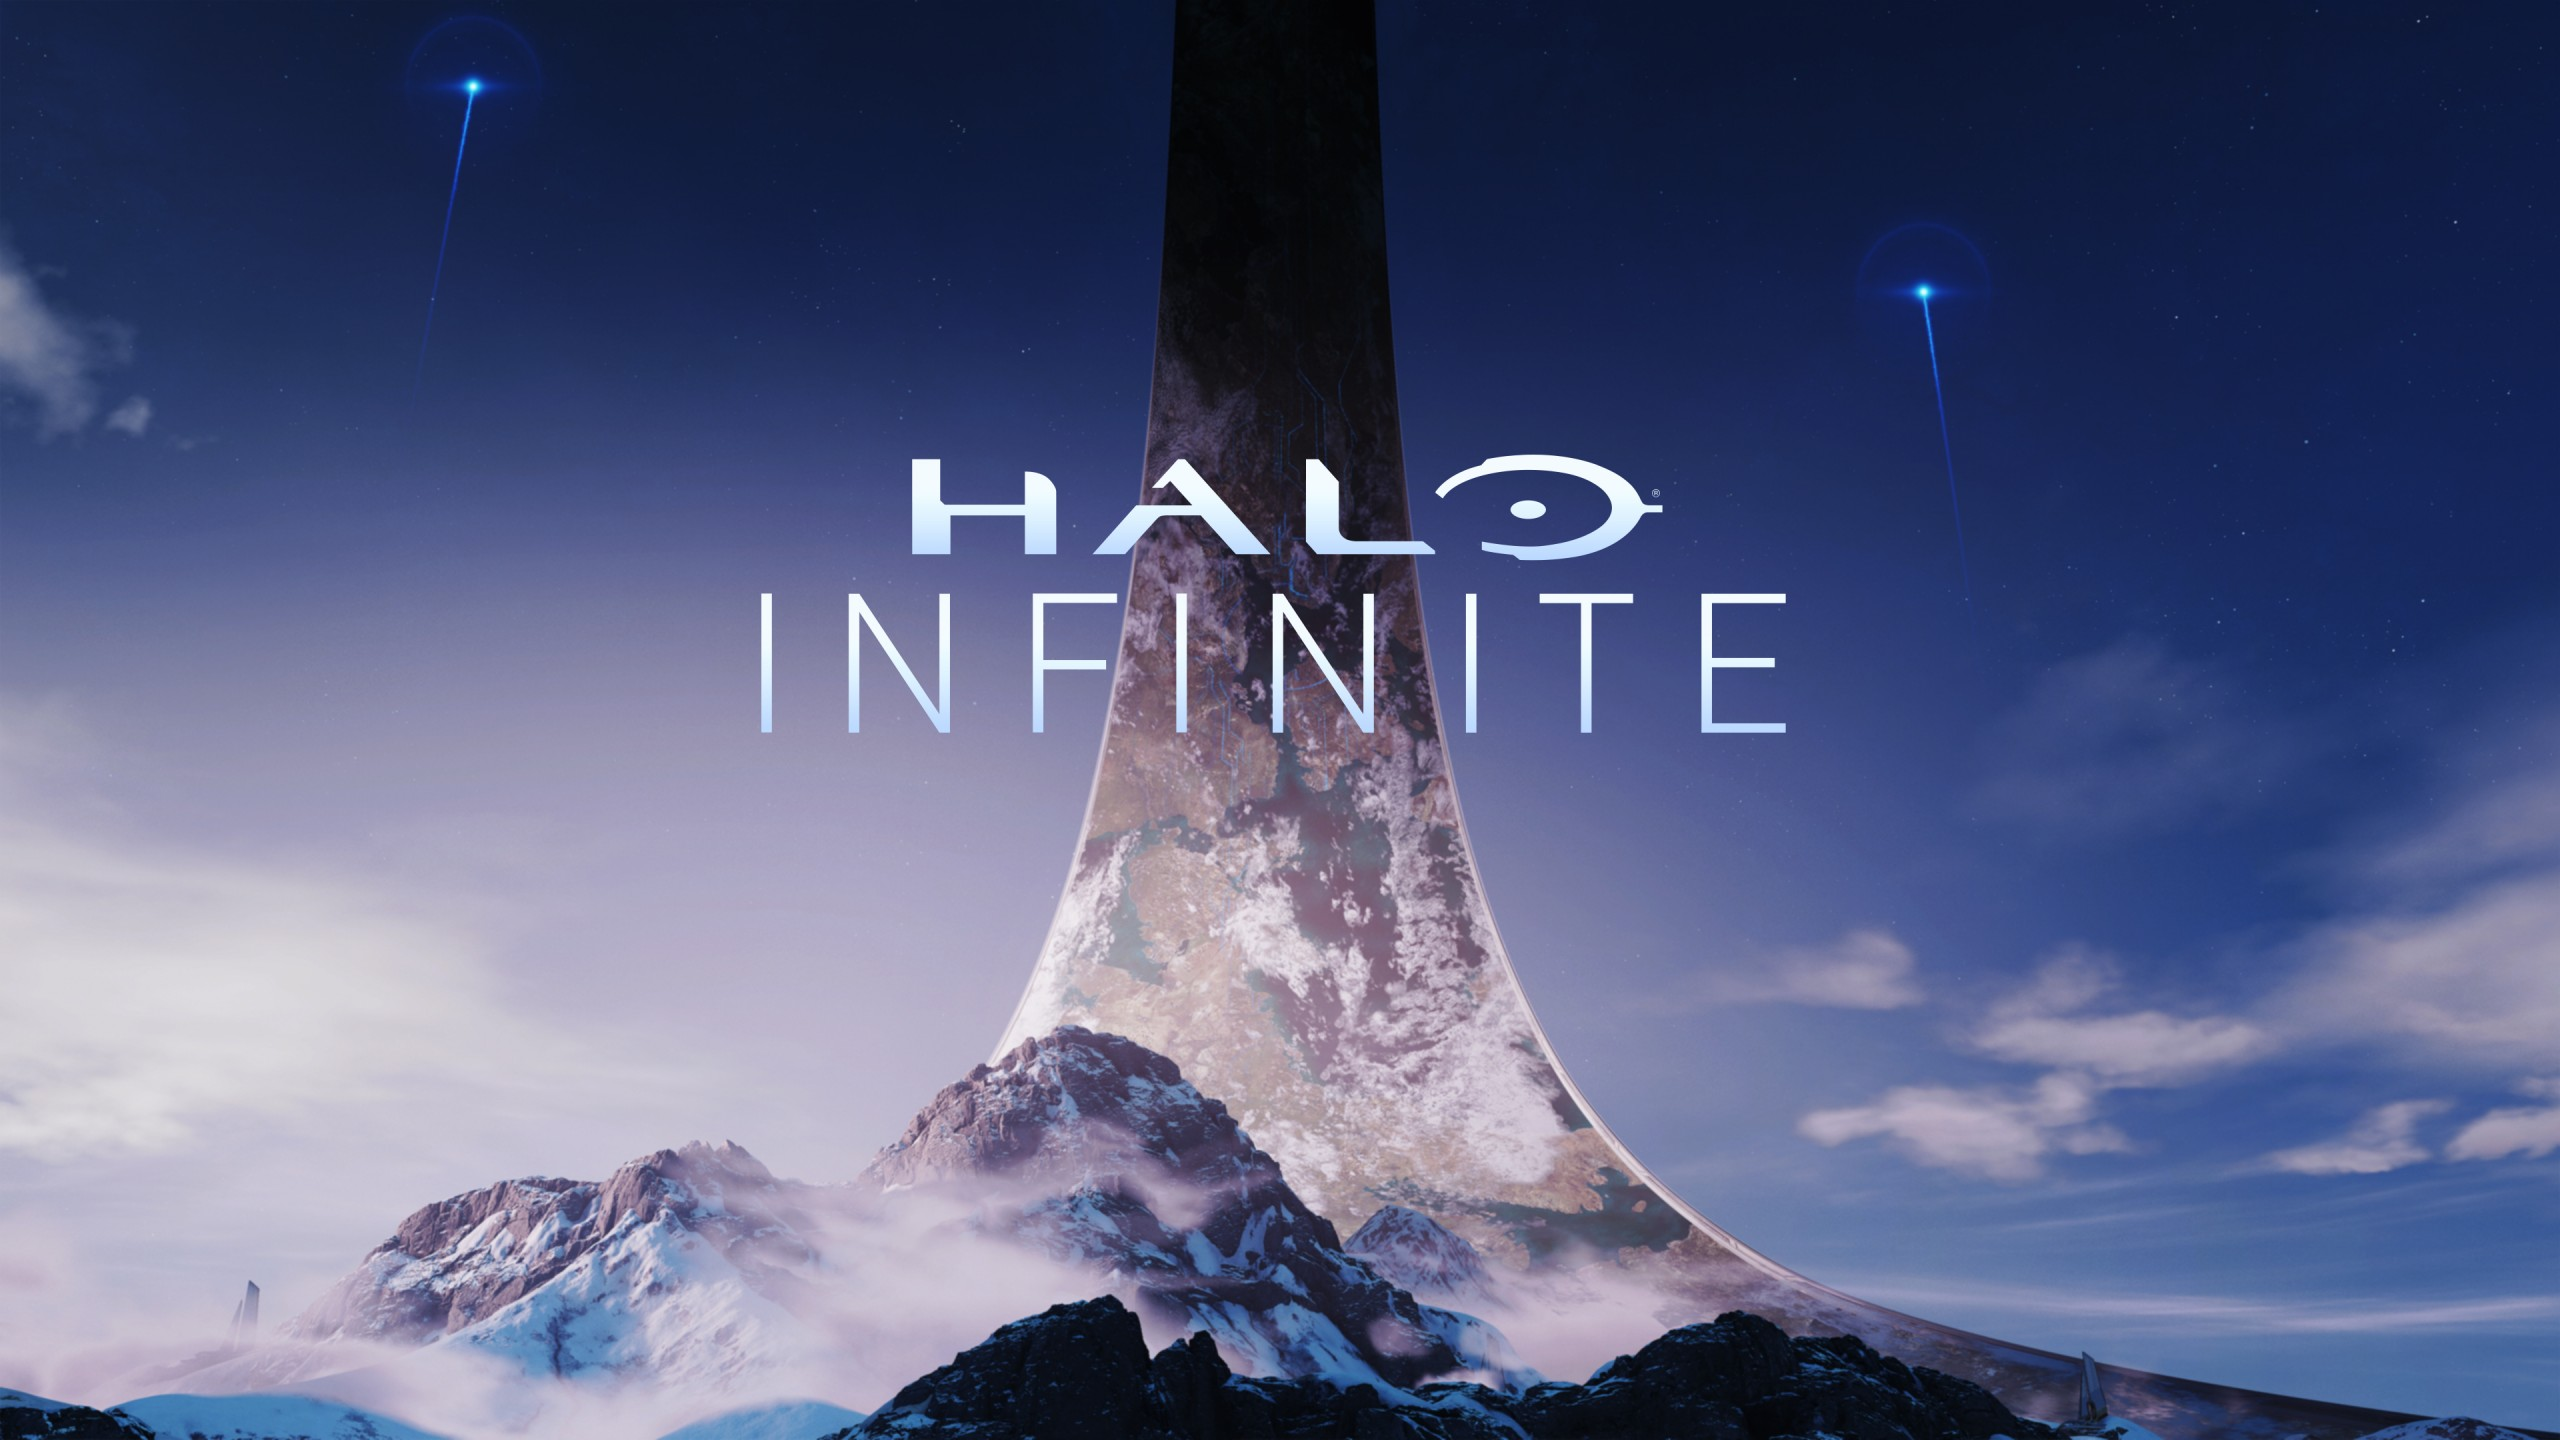 Cute Love Mobile Wallpapers Download Halo Infinite E3 2018 4k Wallpapers Hd Wallpapers Id